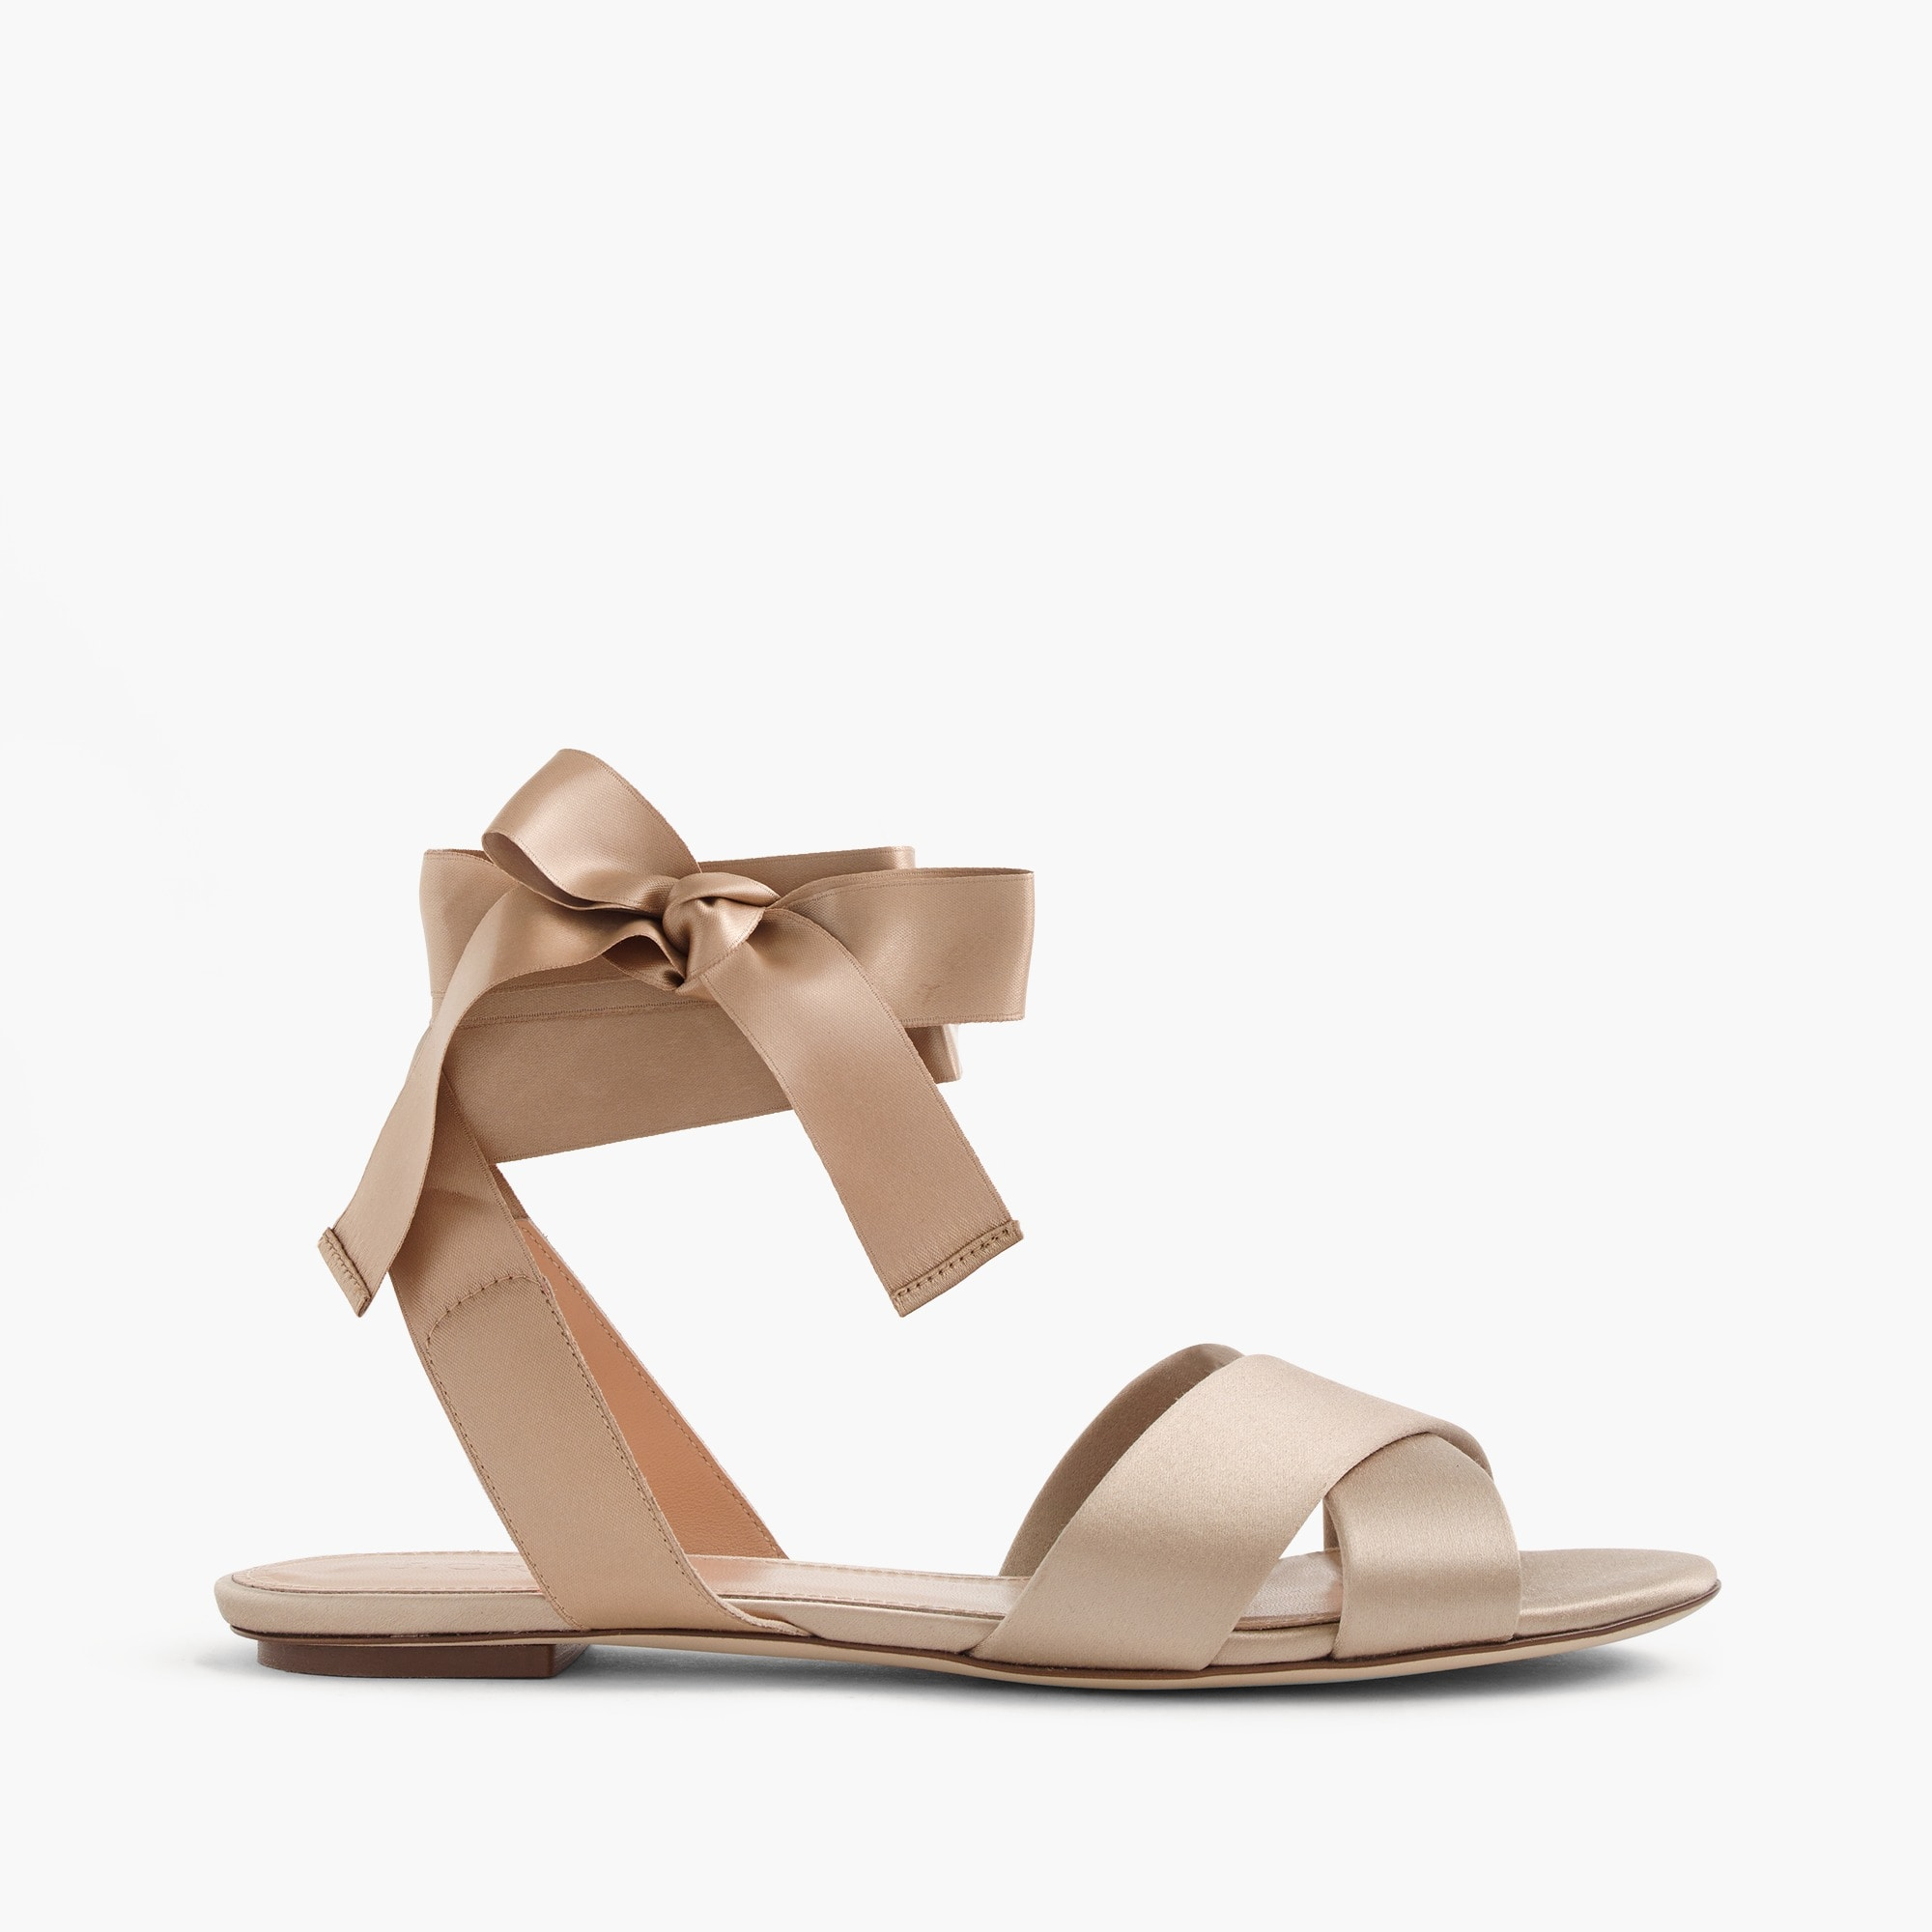 satin cross-strap sandals : women shoes